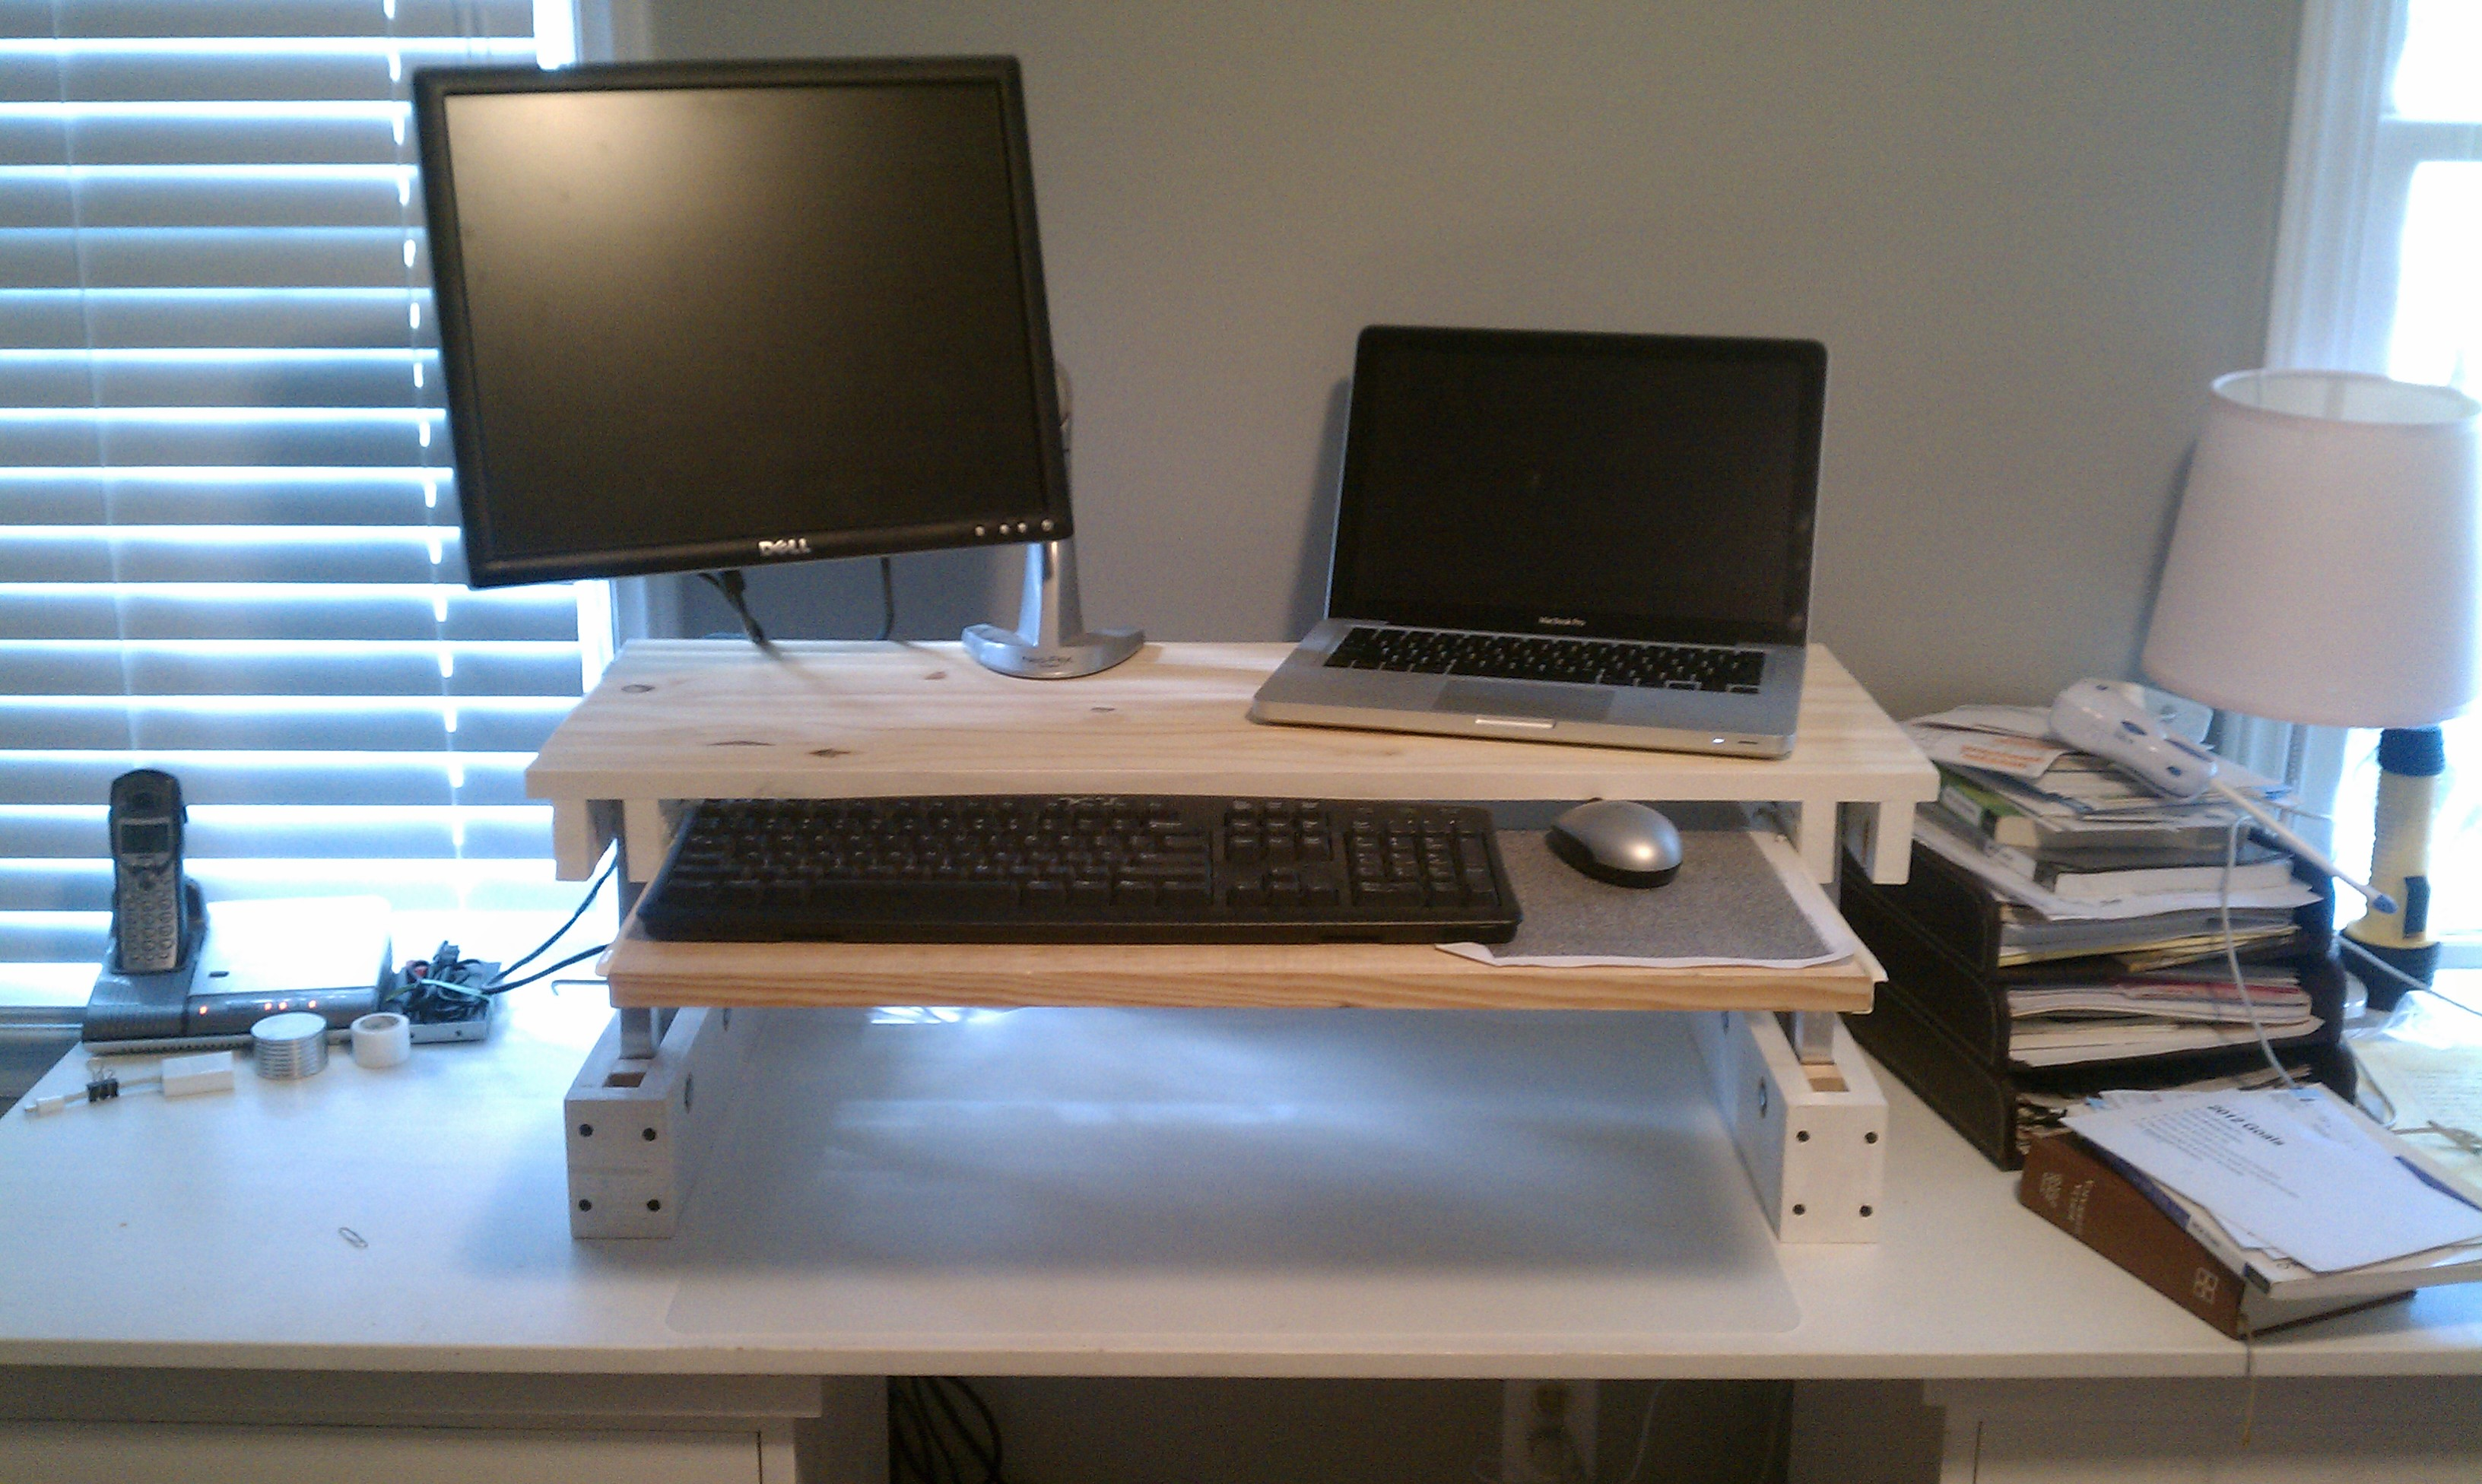 make desktop difference on hands the desk updesk does apex really powerup a steelseries standing with review